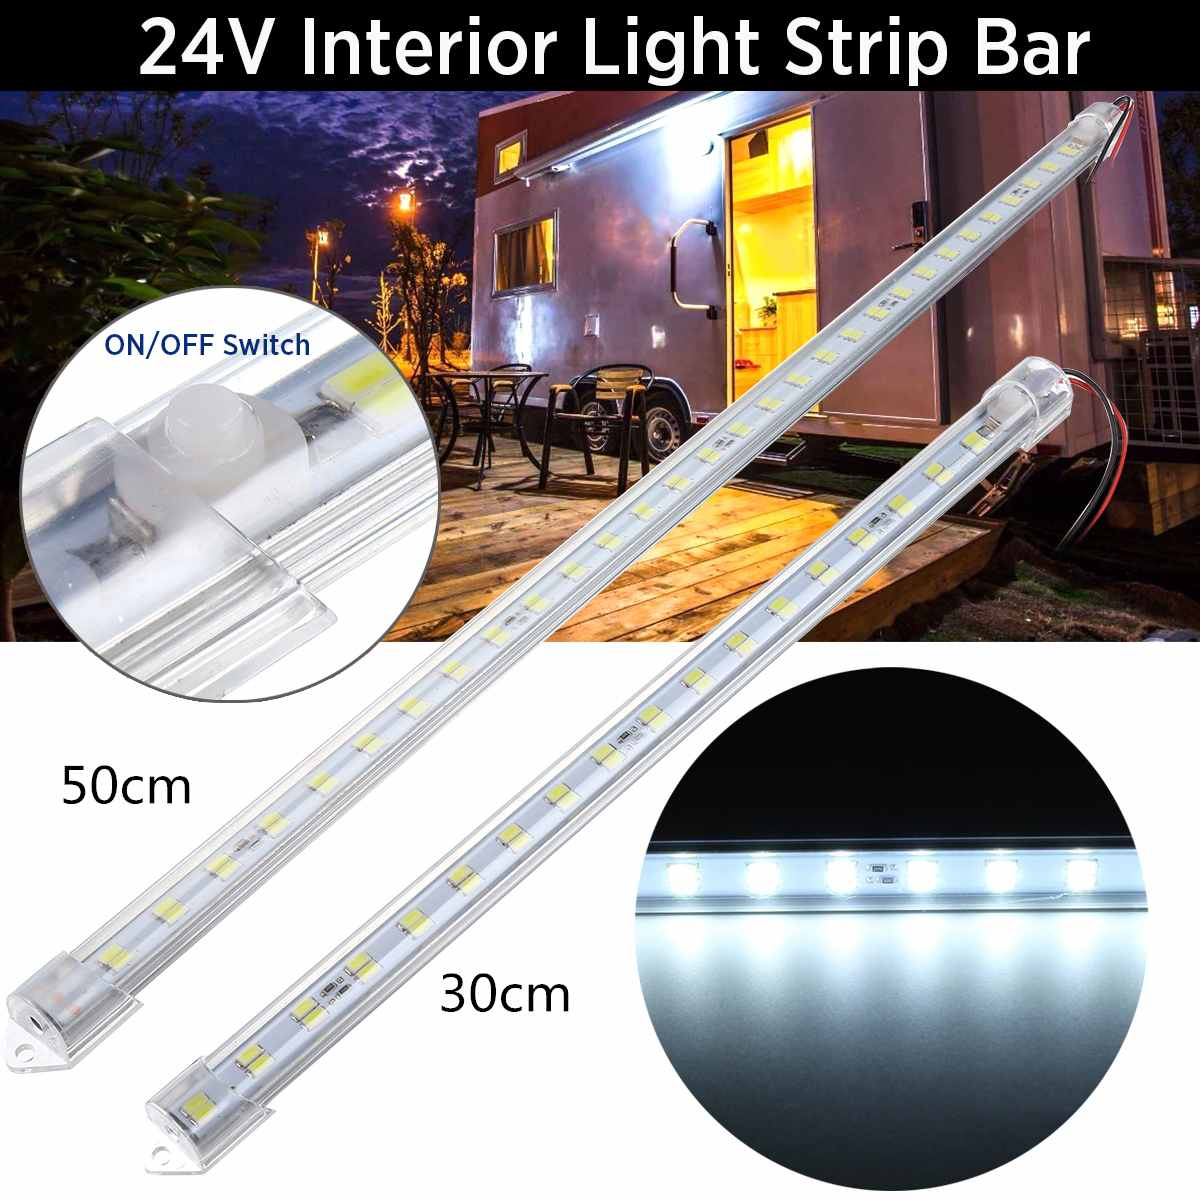 30cm / 50cm 24V Aluminum Car LED Interior Strip Light Bar Lamp Hard LED Bar Work Light RV Van Boat Caravan Auto Truck Vehicle